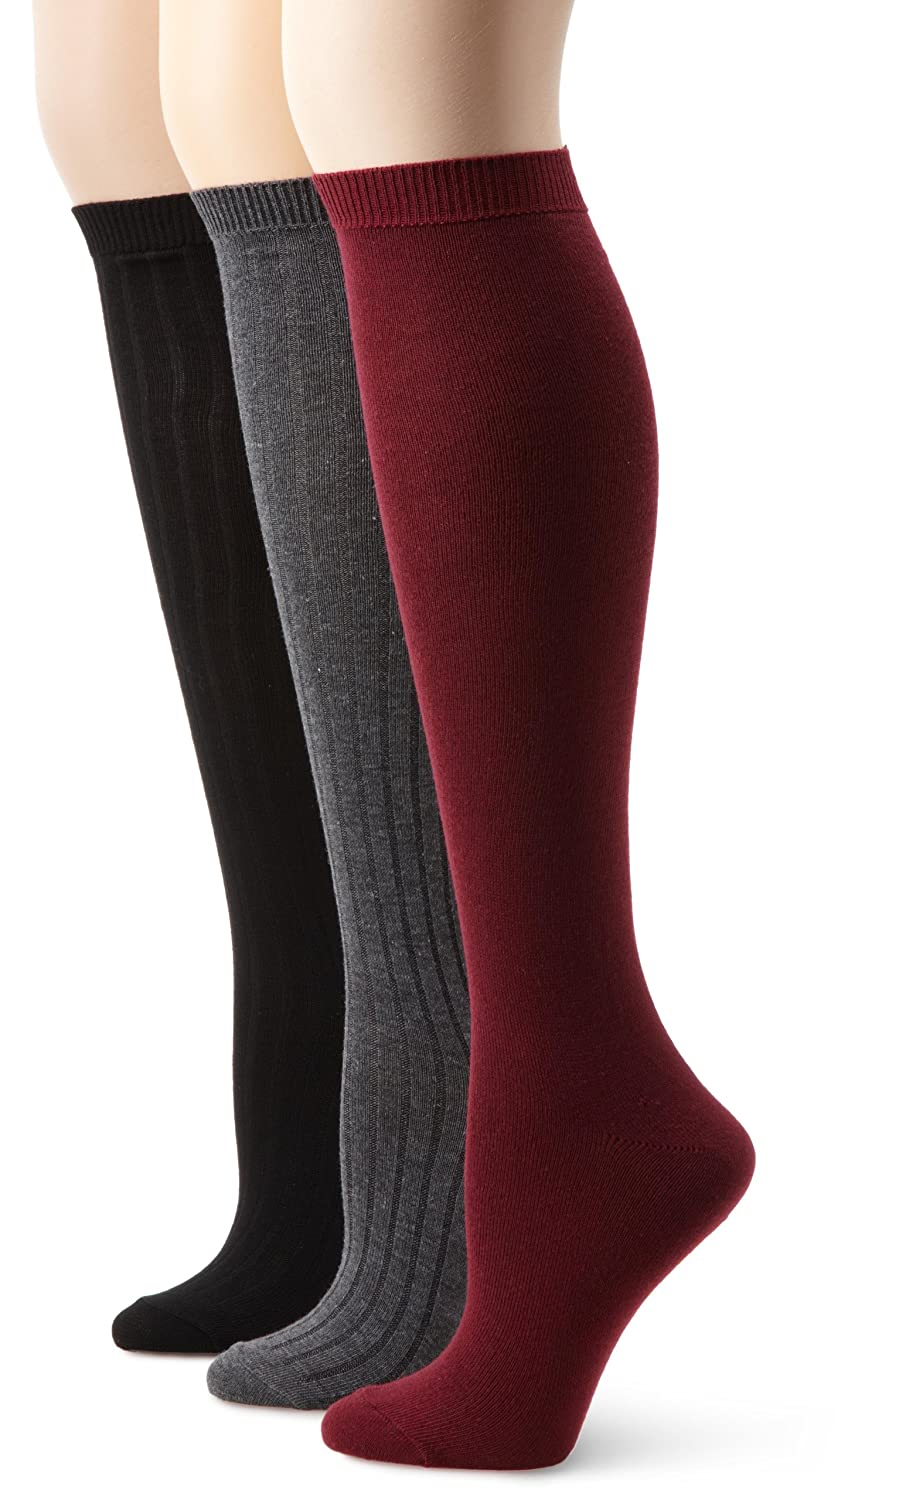 Nine West Women's Textured Rib And Solid Flat Knit Knee High 3 Pair Sock, Bordeaux, Size 9-11